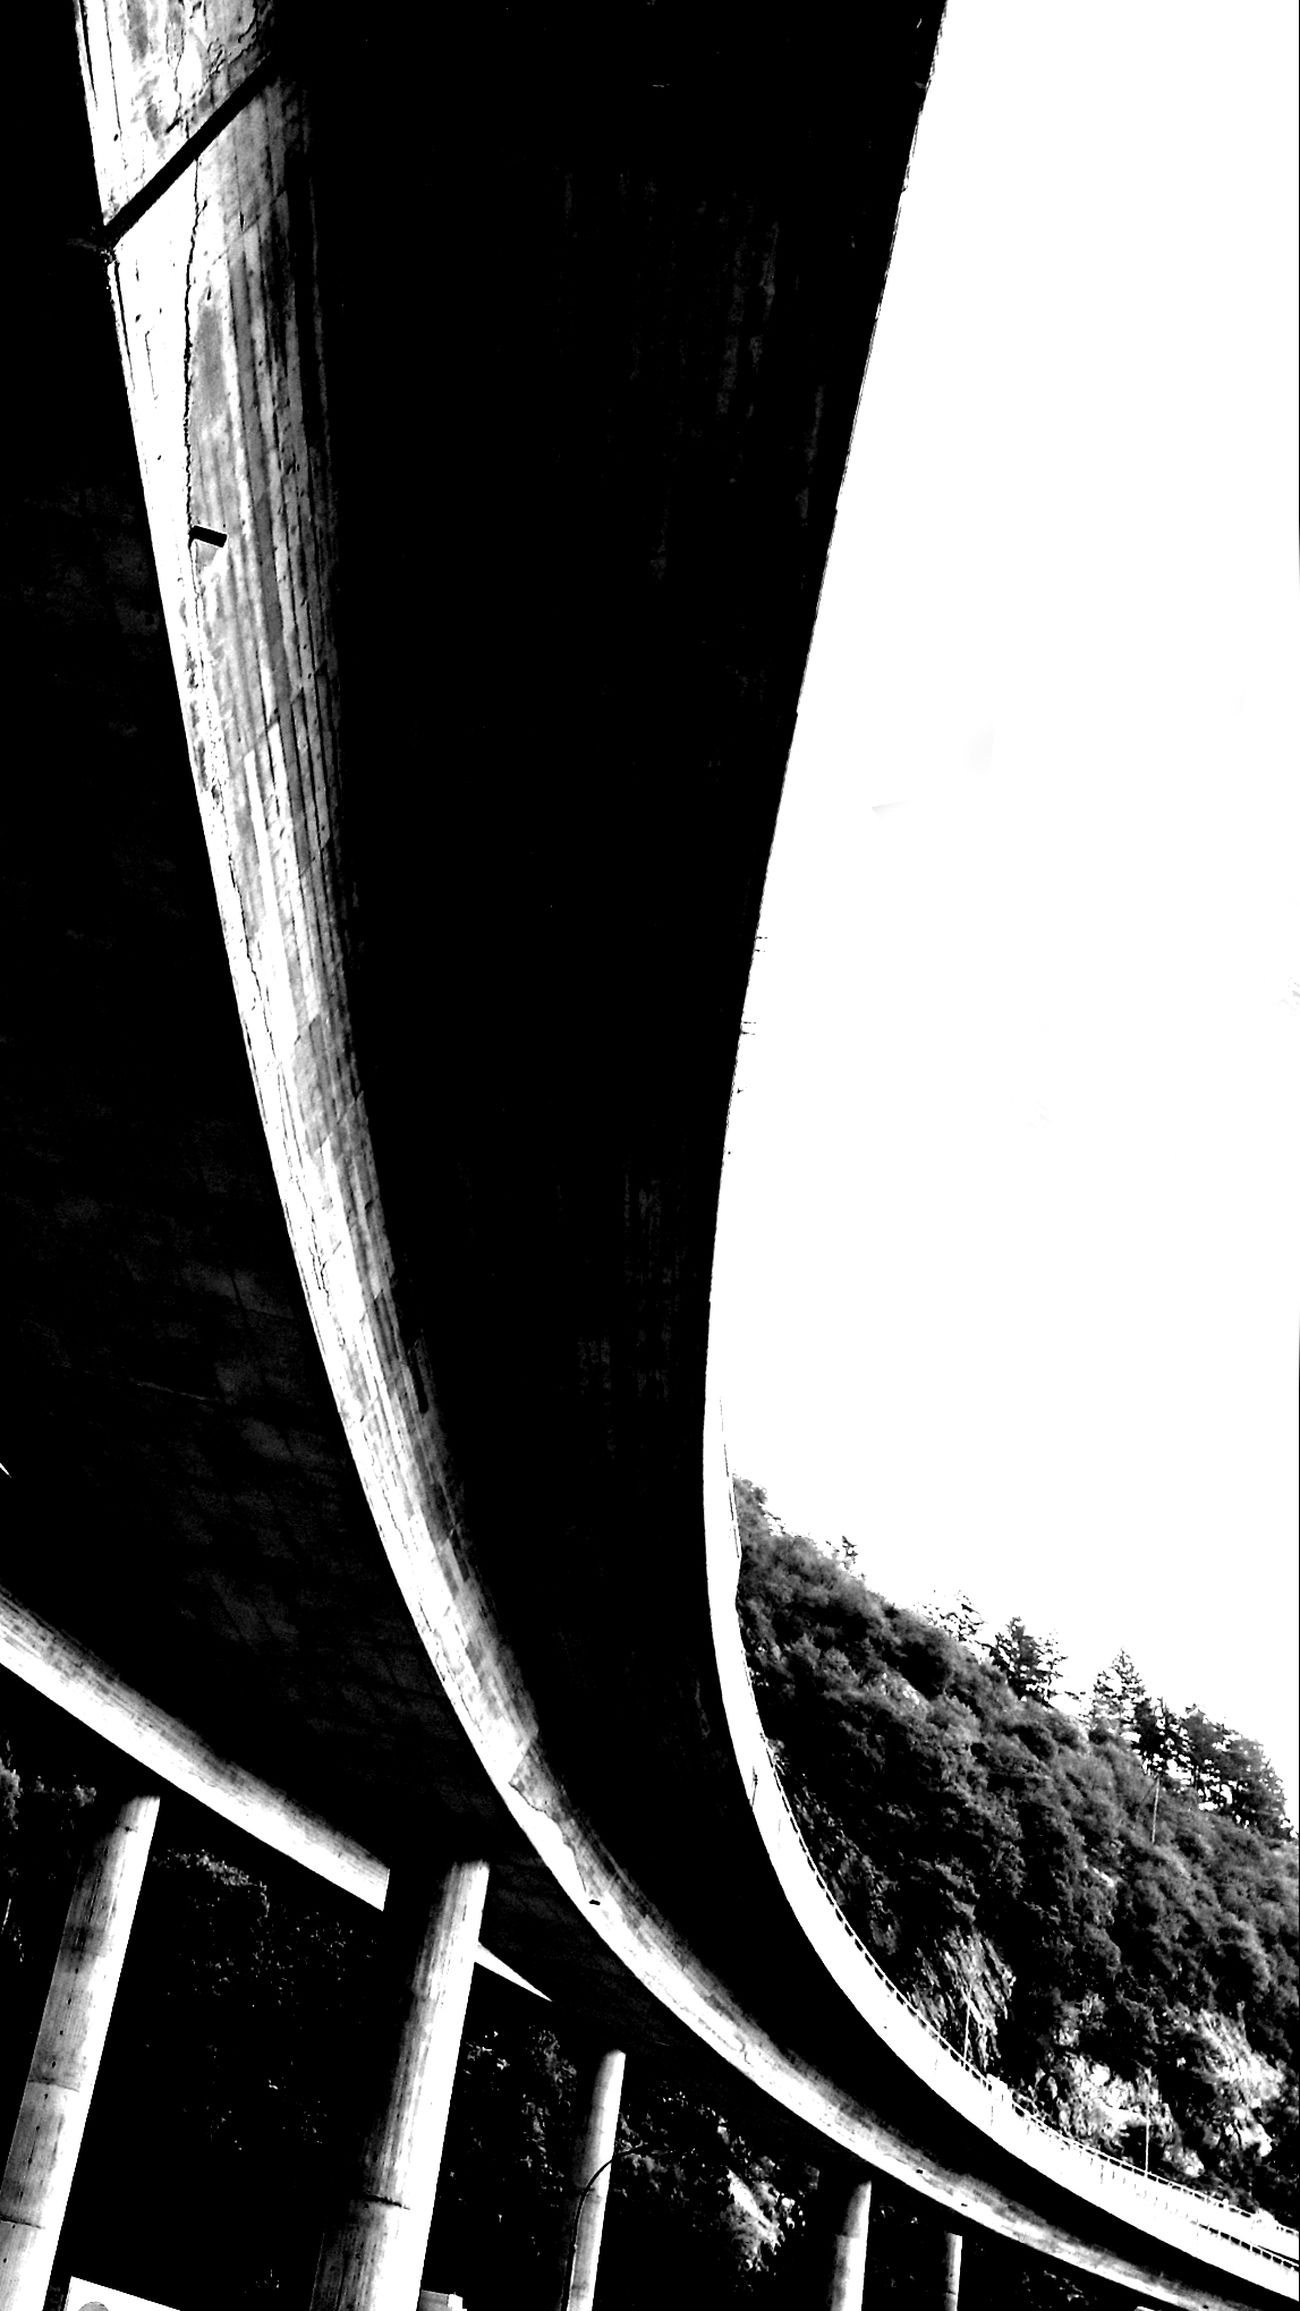 Low Angle View Built Structure Architecture PhonePhotography Smartphone Photography Photography Highway Blackandwhite Black & White Black And White Photography Construction Bridge Street Architecture_bw Lines & Curves Art Urban Transportation